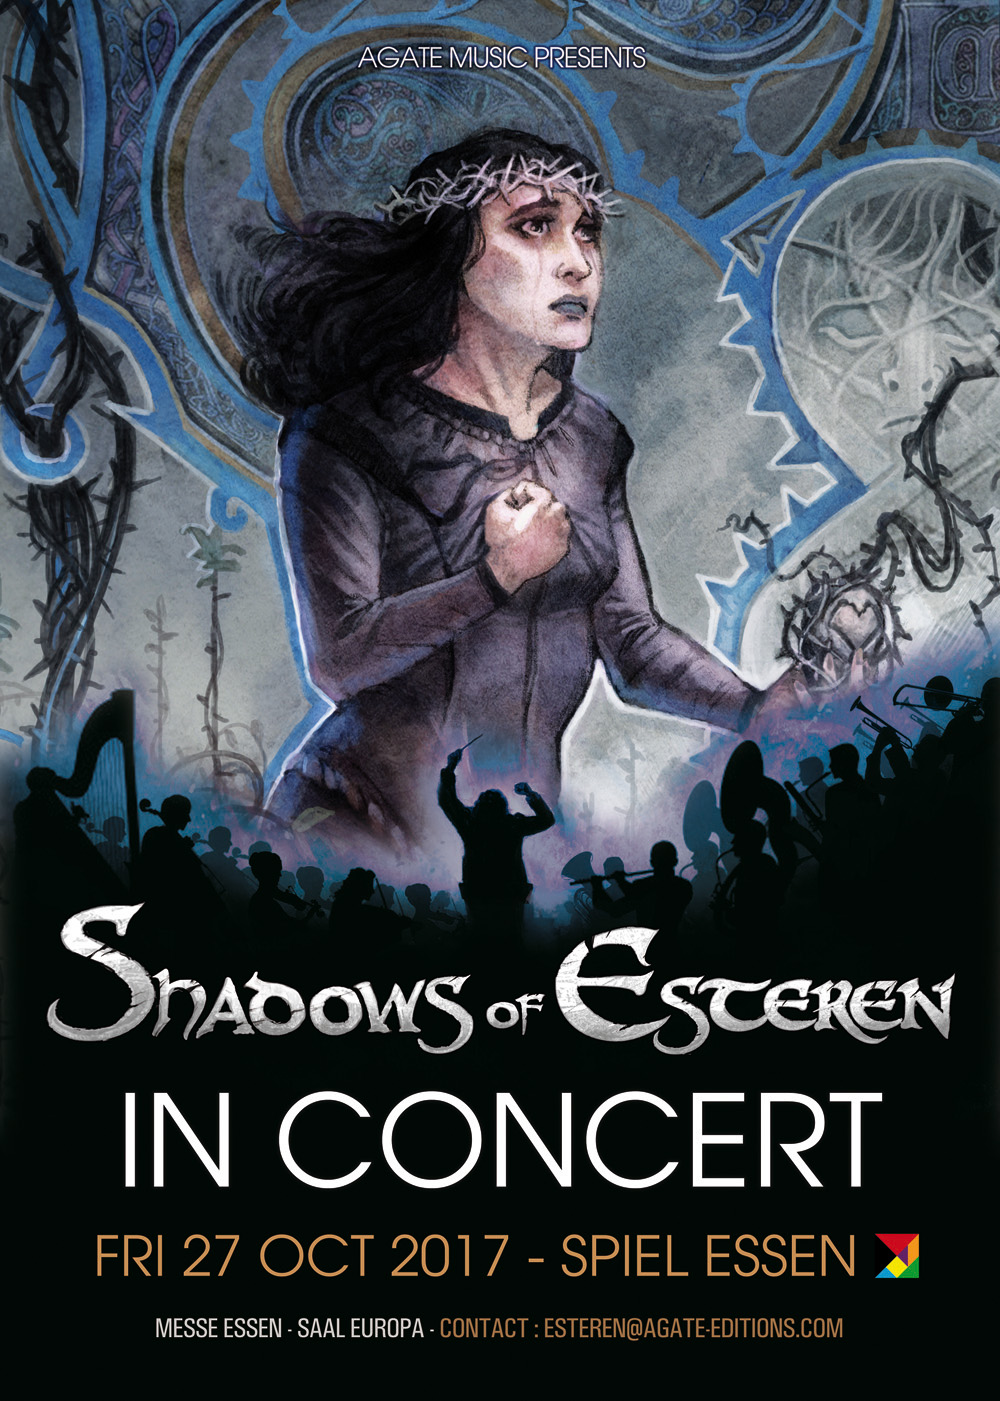 Shadows of Esteren Concert: Adeliane live at the SPIEL 2017 (Image: Agate Music)